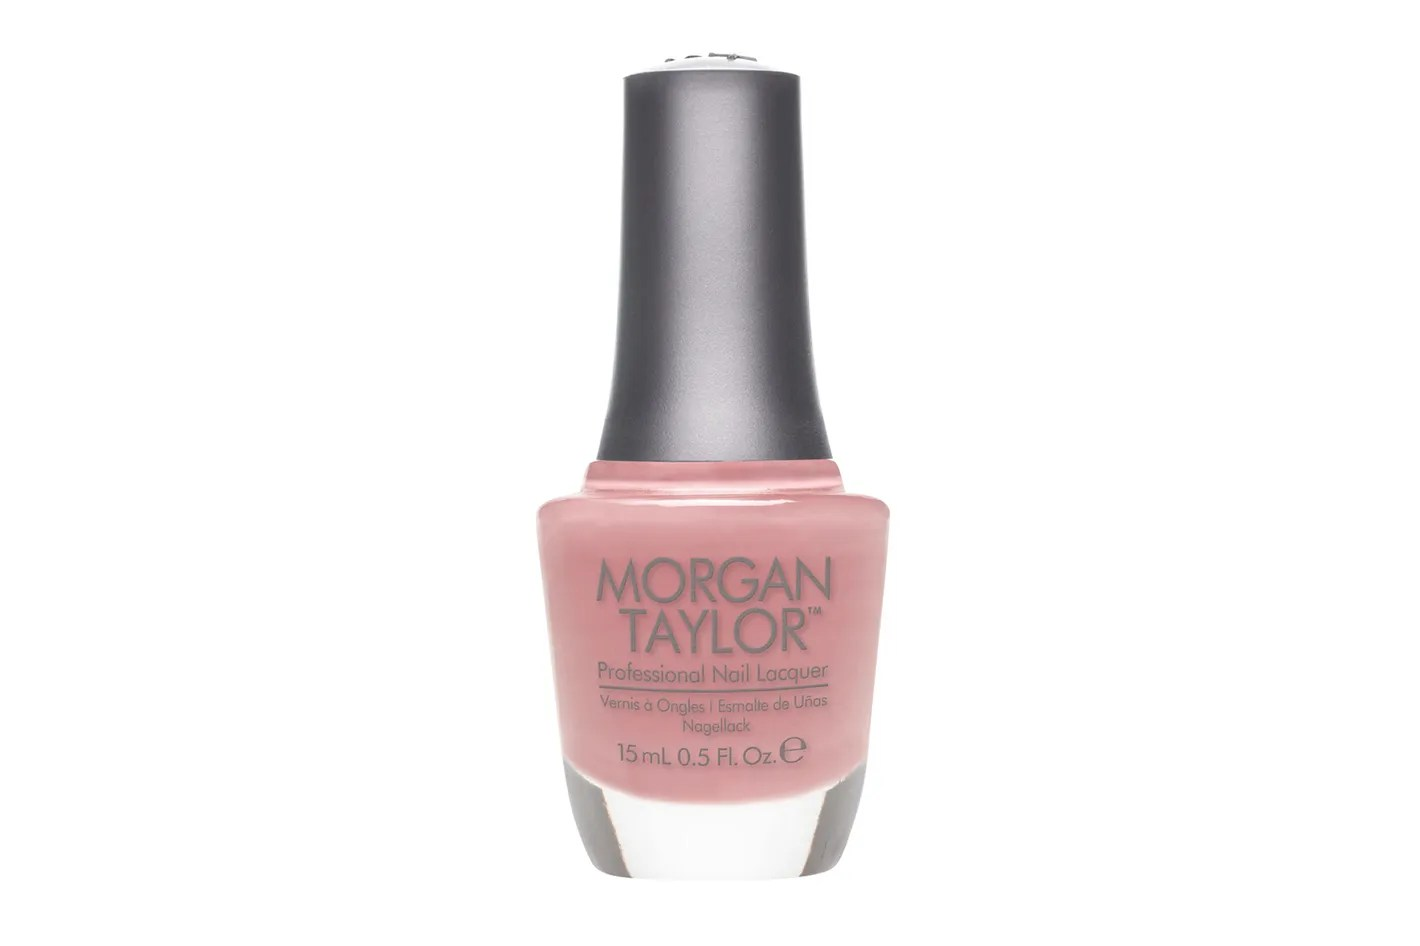 Man Taylor Professional Nail Lacquer In Ing Up Roses